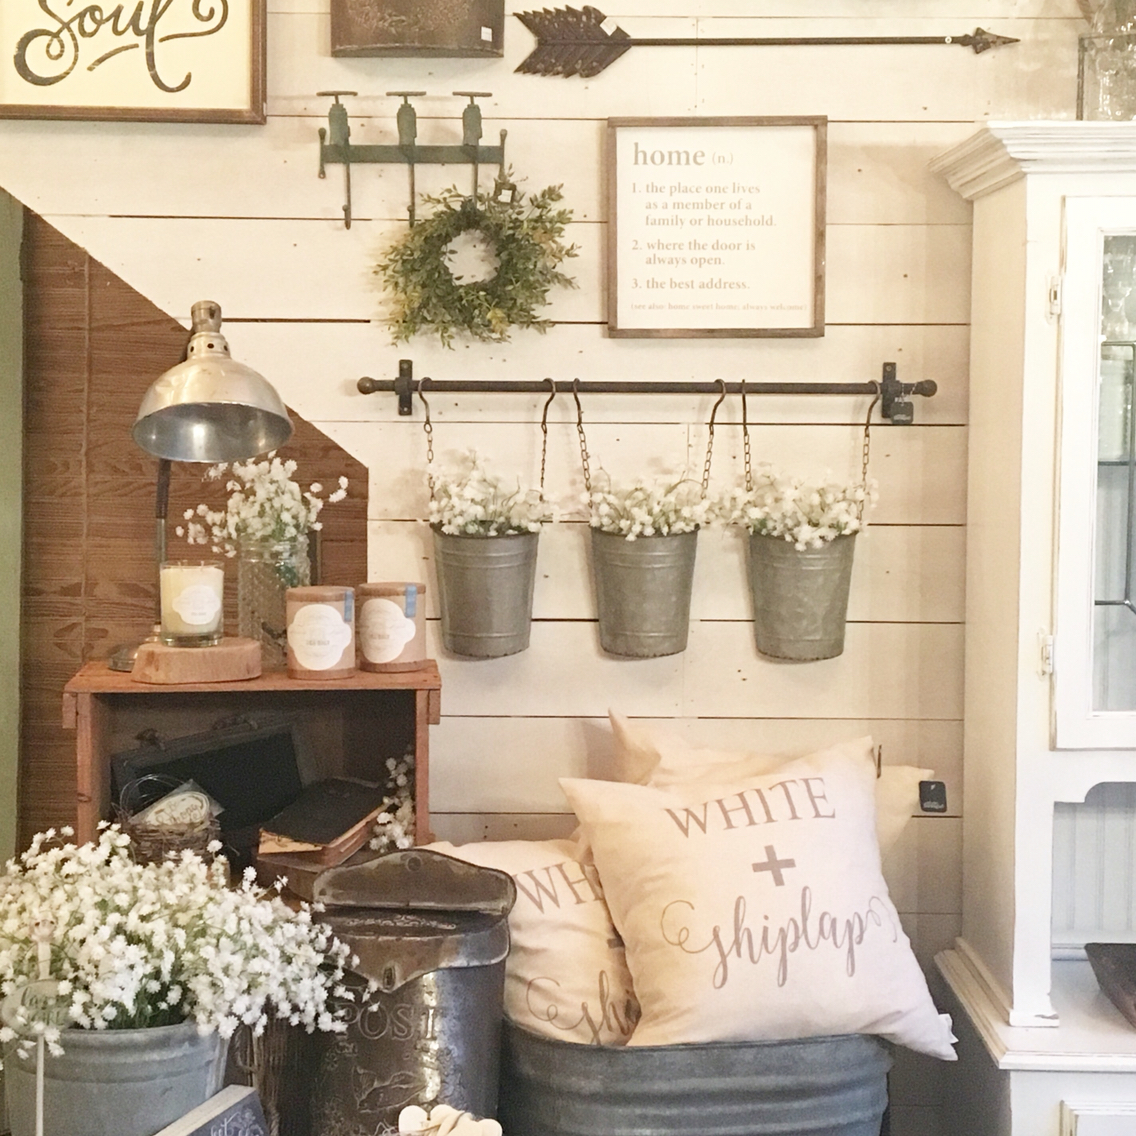 27 Best Rustic Wall Decor Ideas and Designs for 2020 on Wall Decor Ideas  id=22799